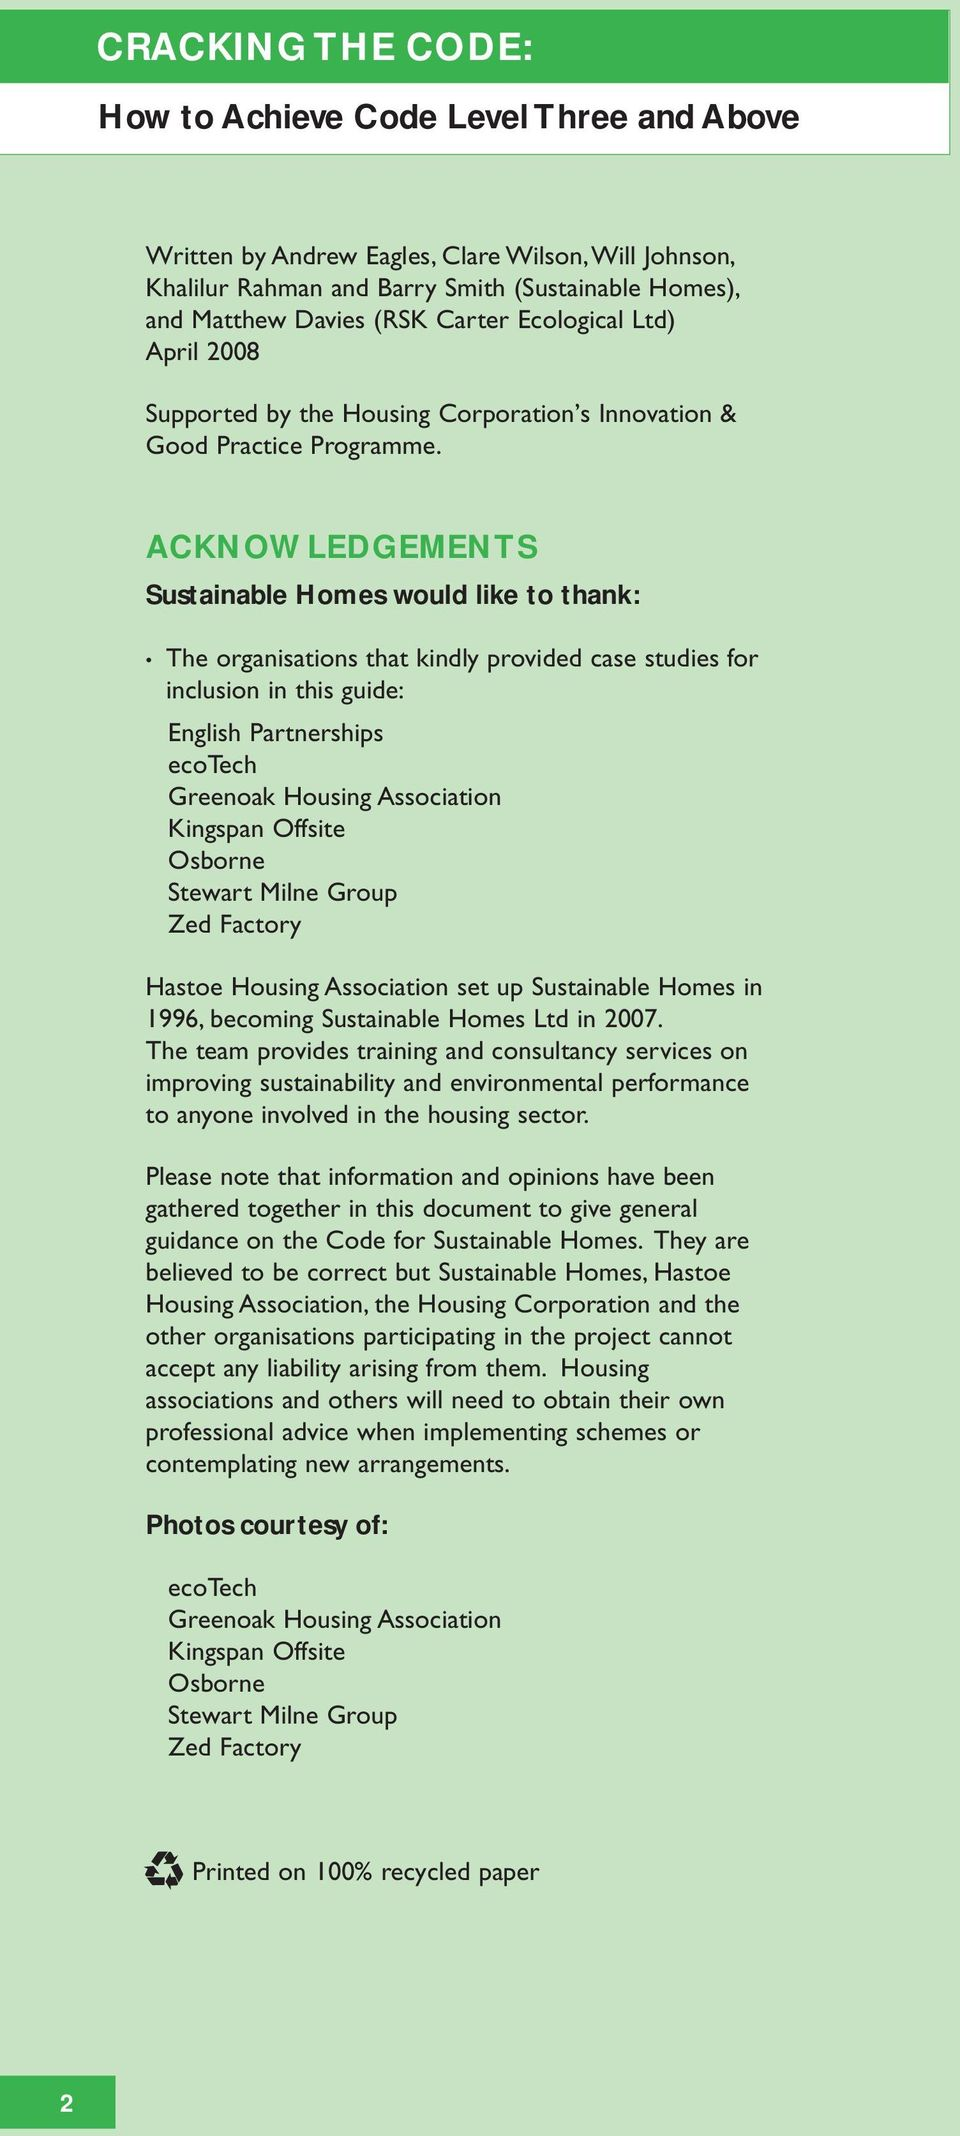 ACKNOWLEDGEMENTS Sustainable Homes would like to thank: The organisations that kindly provided case studies for inclusion in this guide: English Partnerships ecotech Greenoak Housing Association